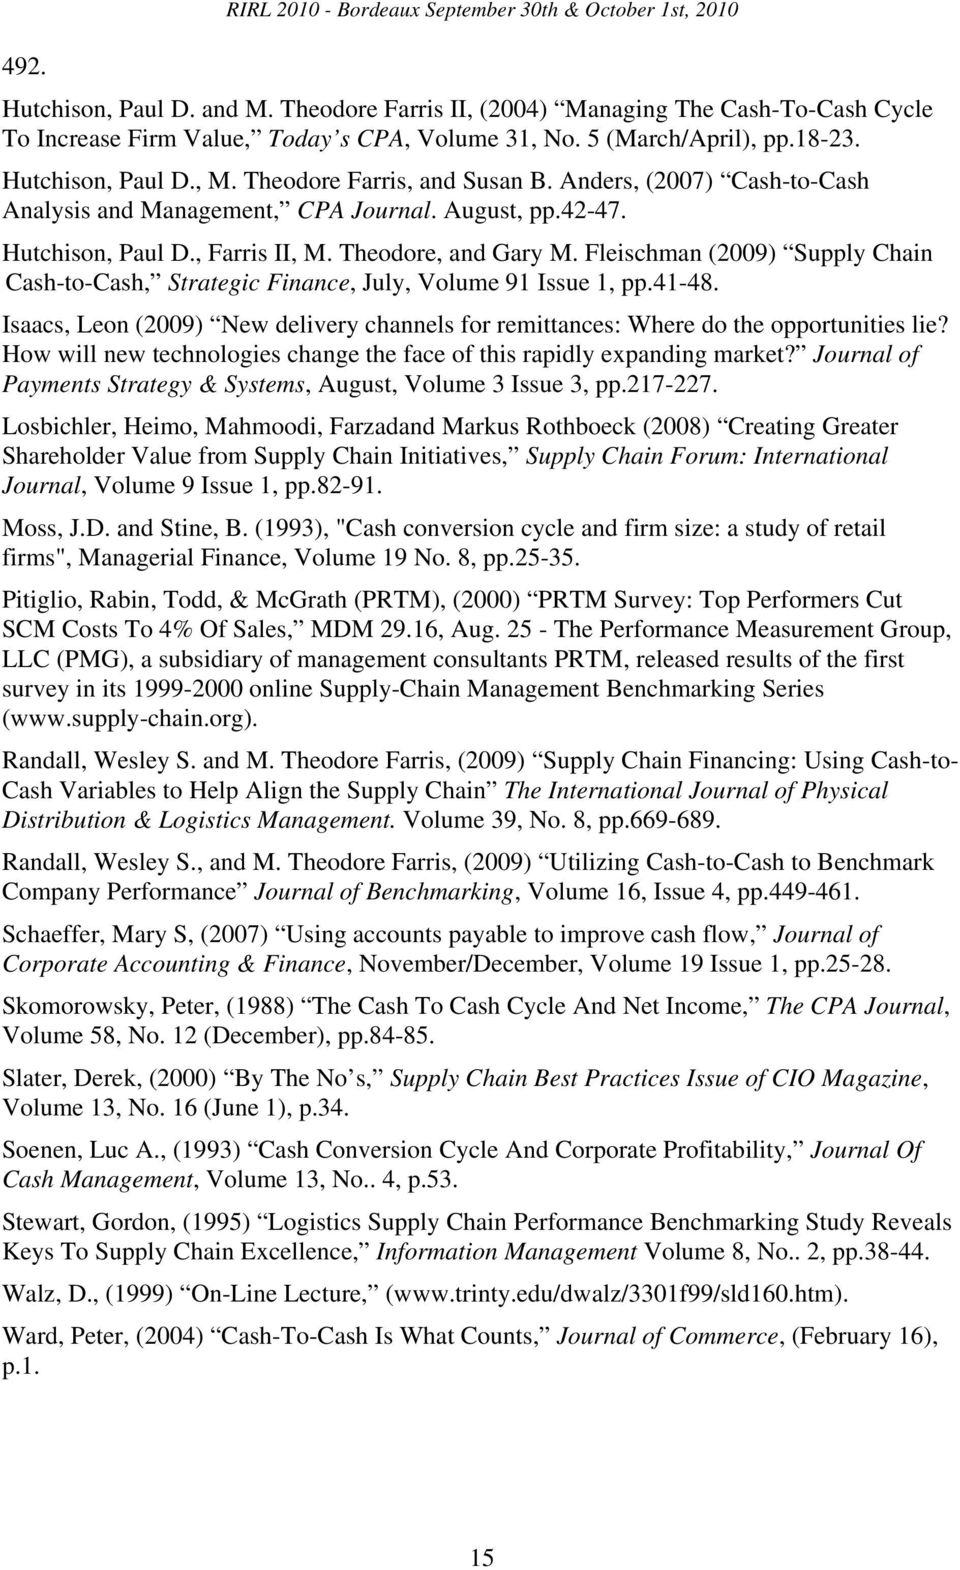 Theodore, and Gary M. Fleischman (2009) Supply Chain Cash-to-Cash, Strategic Finance, July, Volume 91 Issue 1, pp.41-48.